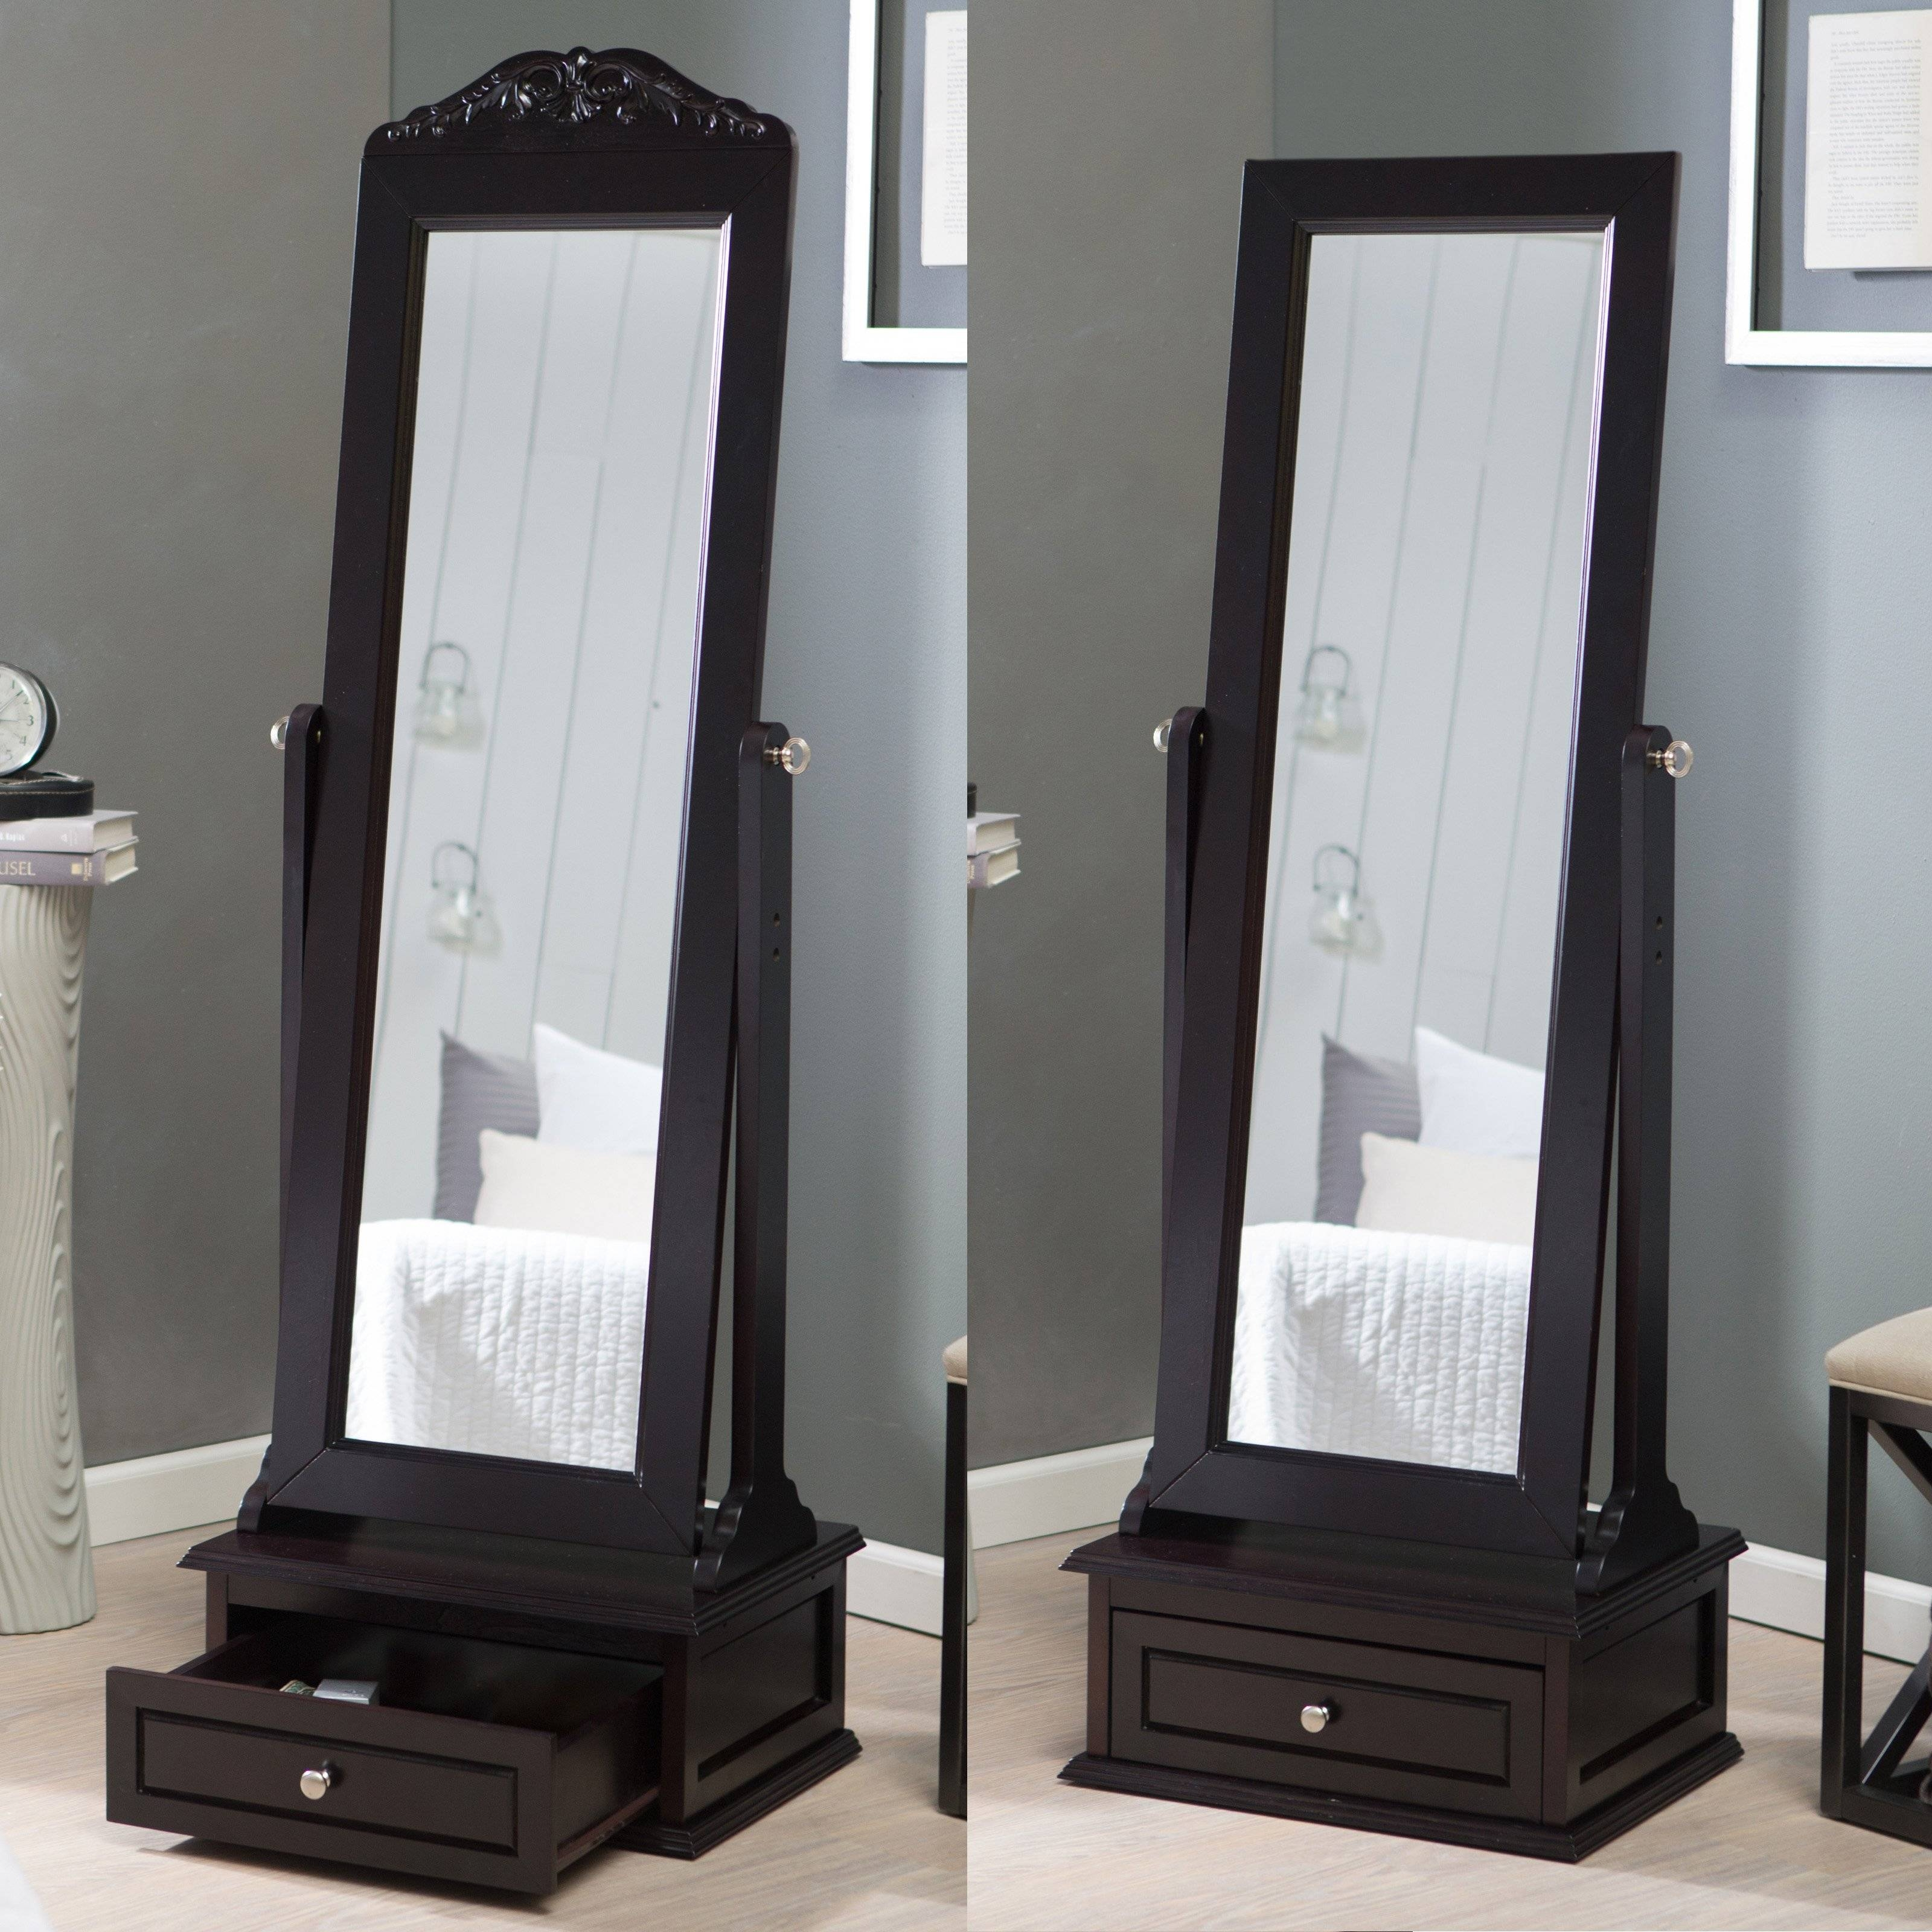 Belham Living Removable Decorative Top Cheval Mirror – Espresso Throughout Cheval Free Standing Mirrors (View 9 of 15)